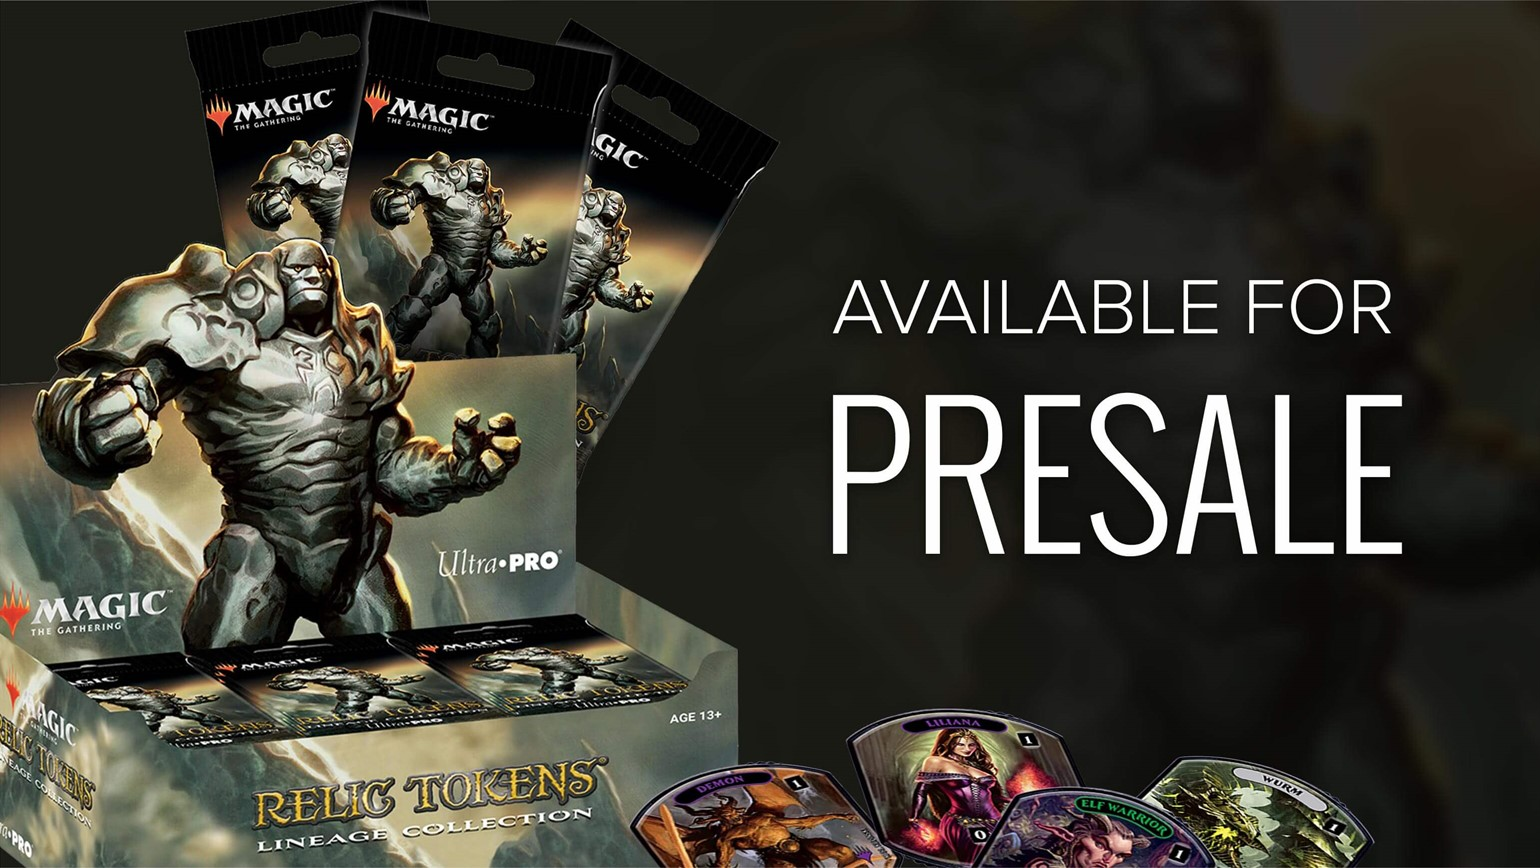 Ultra PRO Relic Tokens: Lineage Collection for Magic: The Gathering Added to TCGplayer Catalog